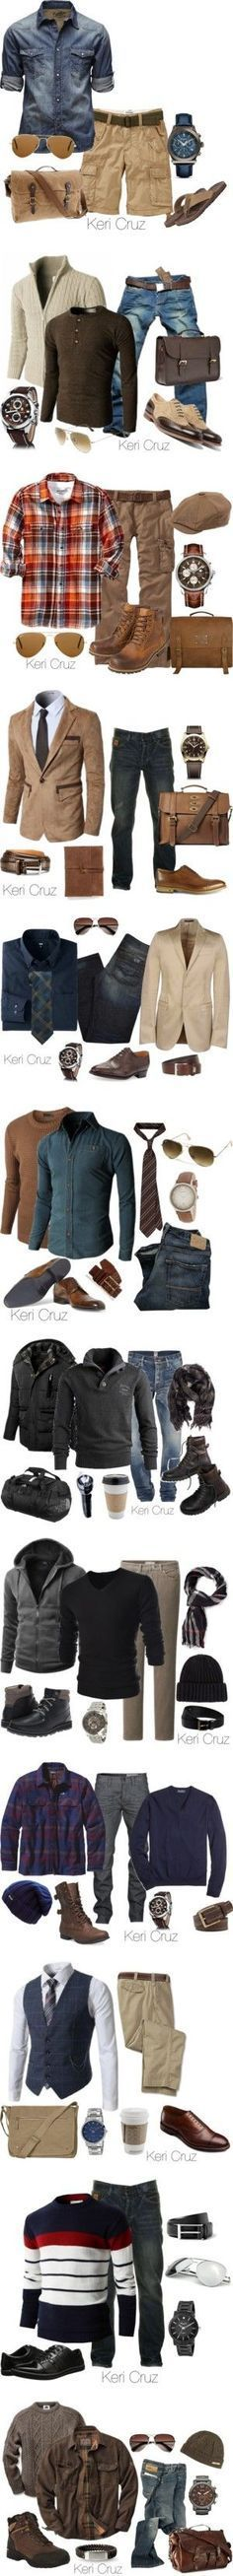 Men's Fashion Sets by Keri Cruz by keri-cruz on Polyvore featuring Old Navy, Jack & Jones, Salvatore Ferragamo, Ray-Ban, J.Crew, Kenneth Cole Reaction, Doublju, Cerruti 1881, Mulberry and 73